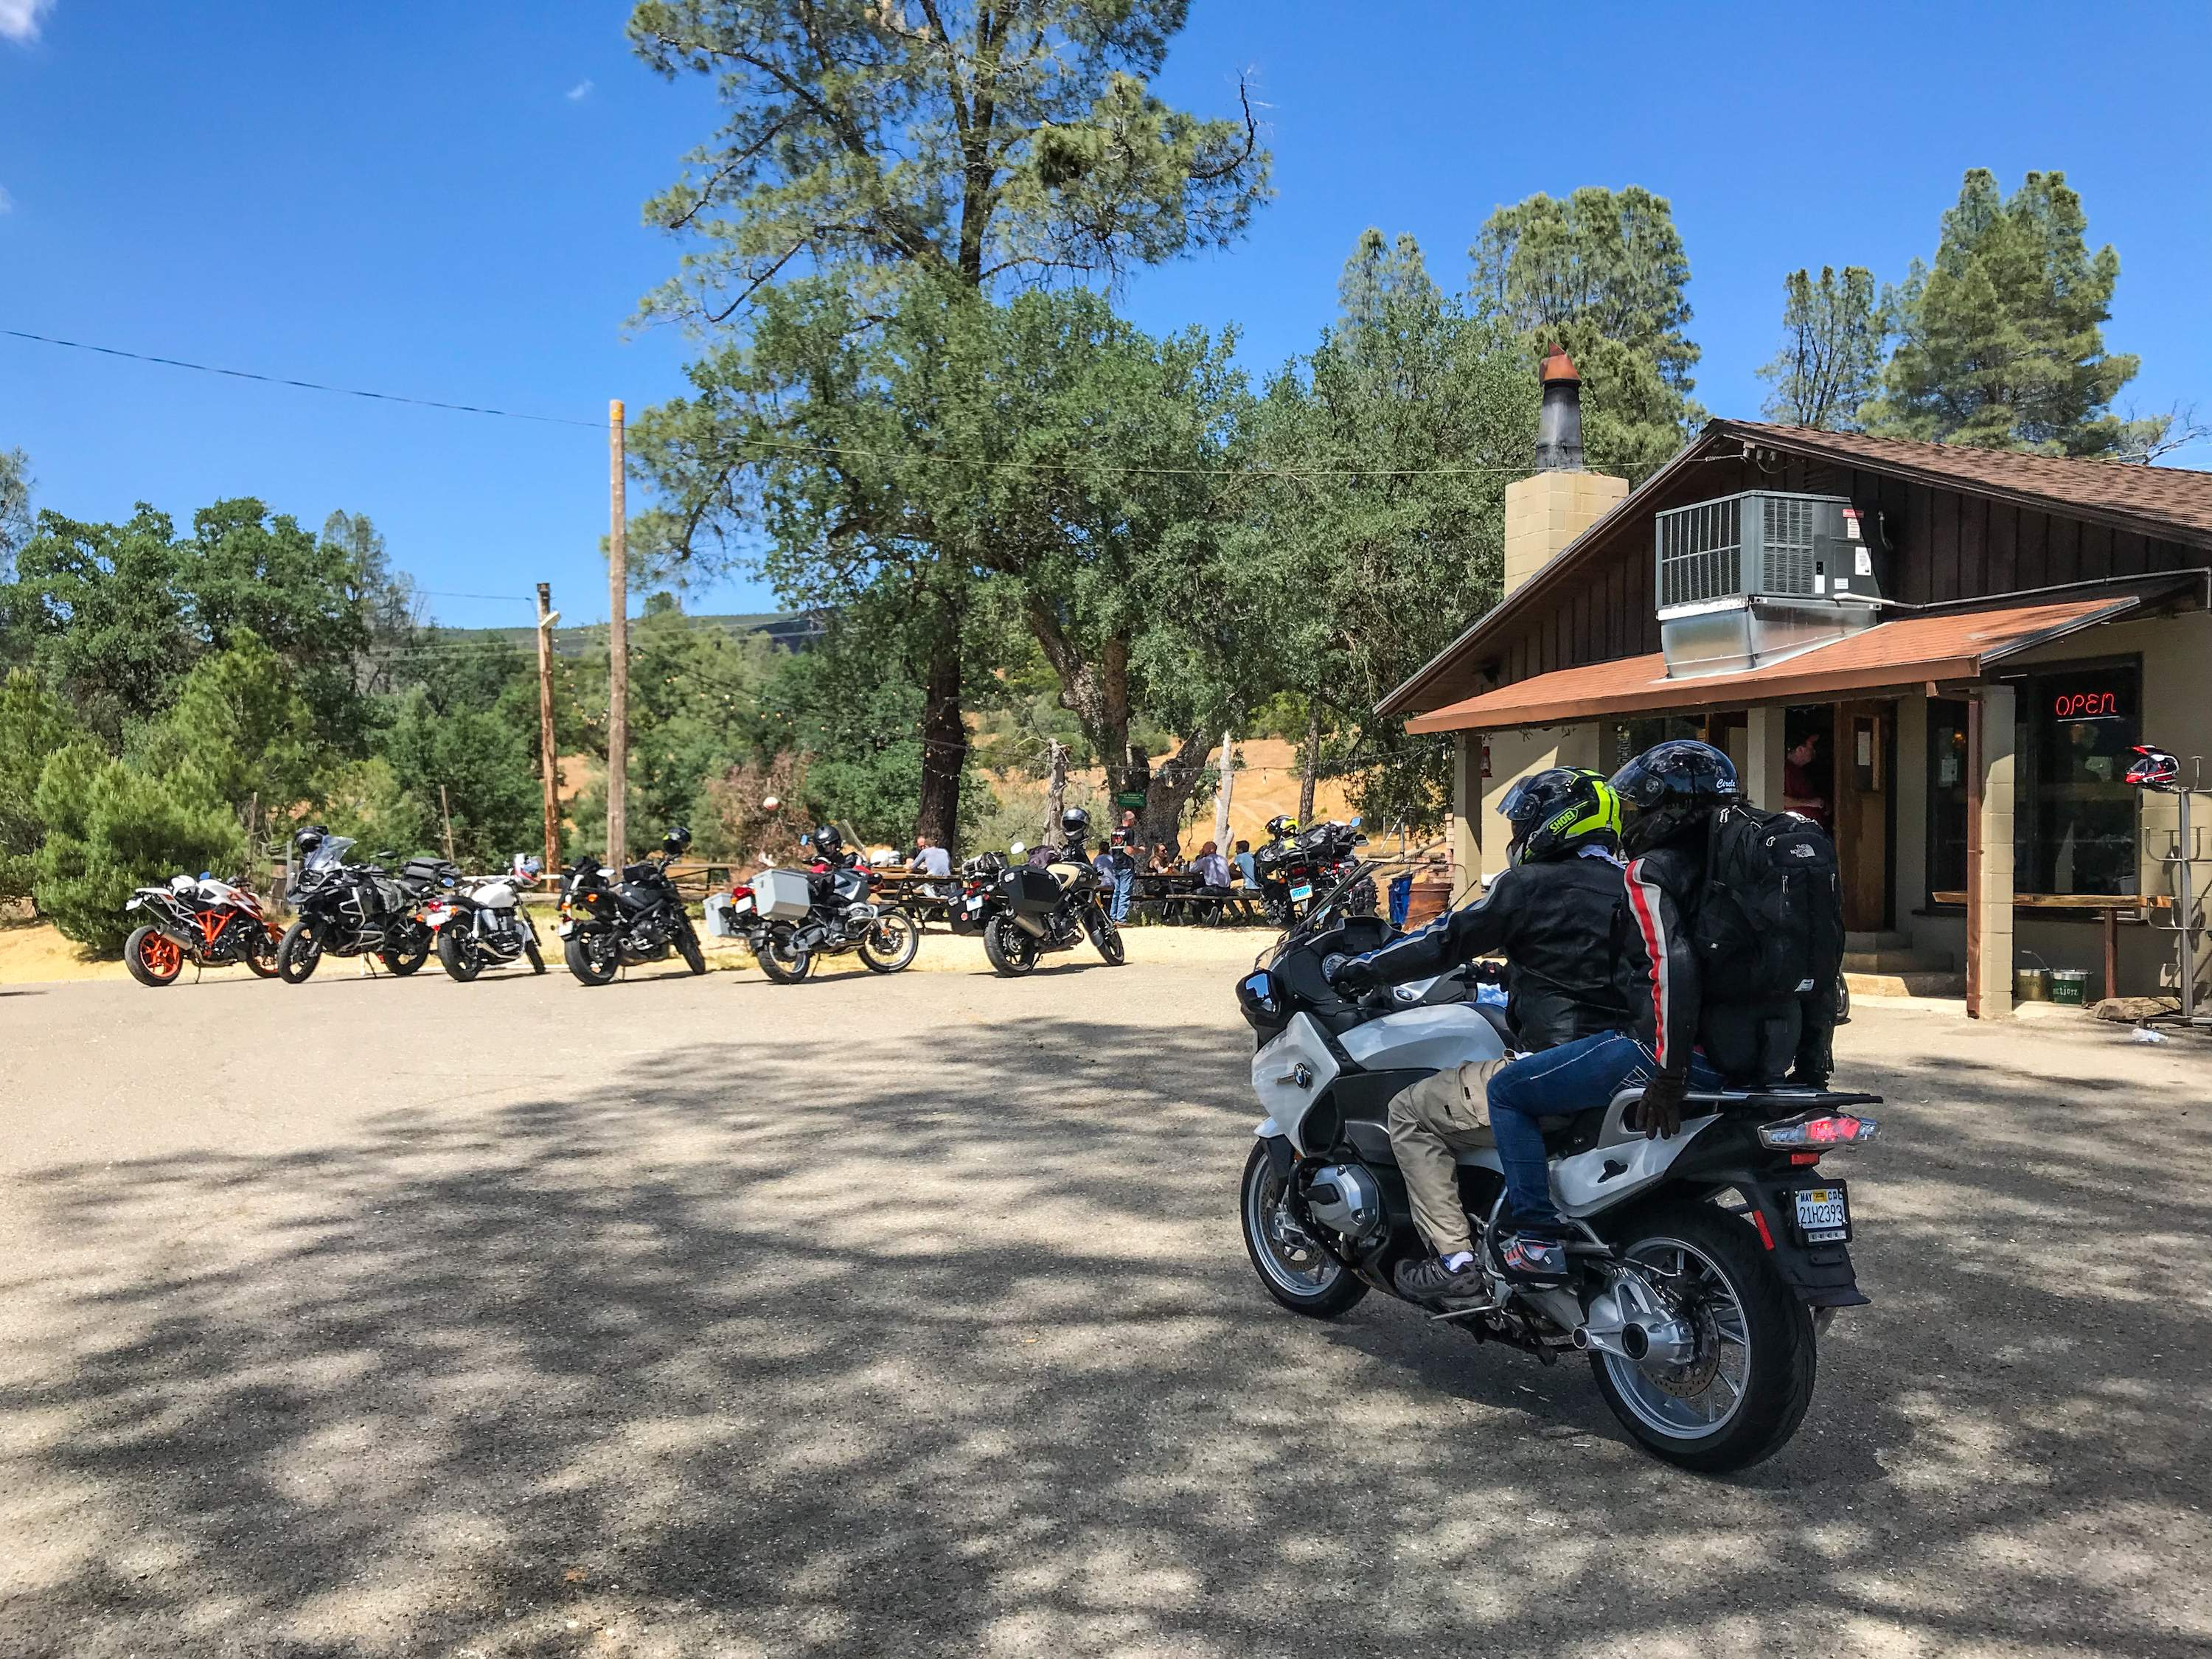 san francisco motorcycle tour mines road mt hamilton bmw gs wild west